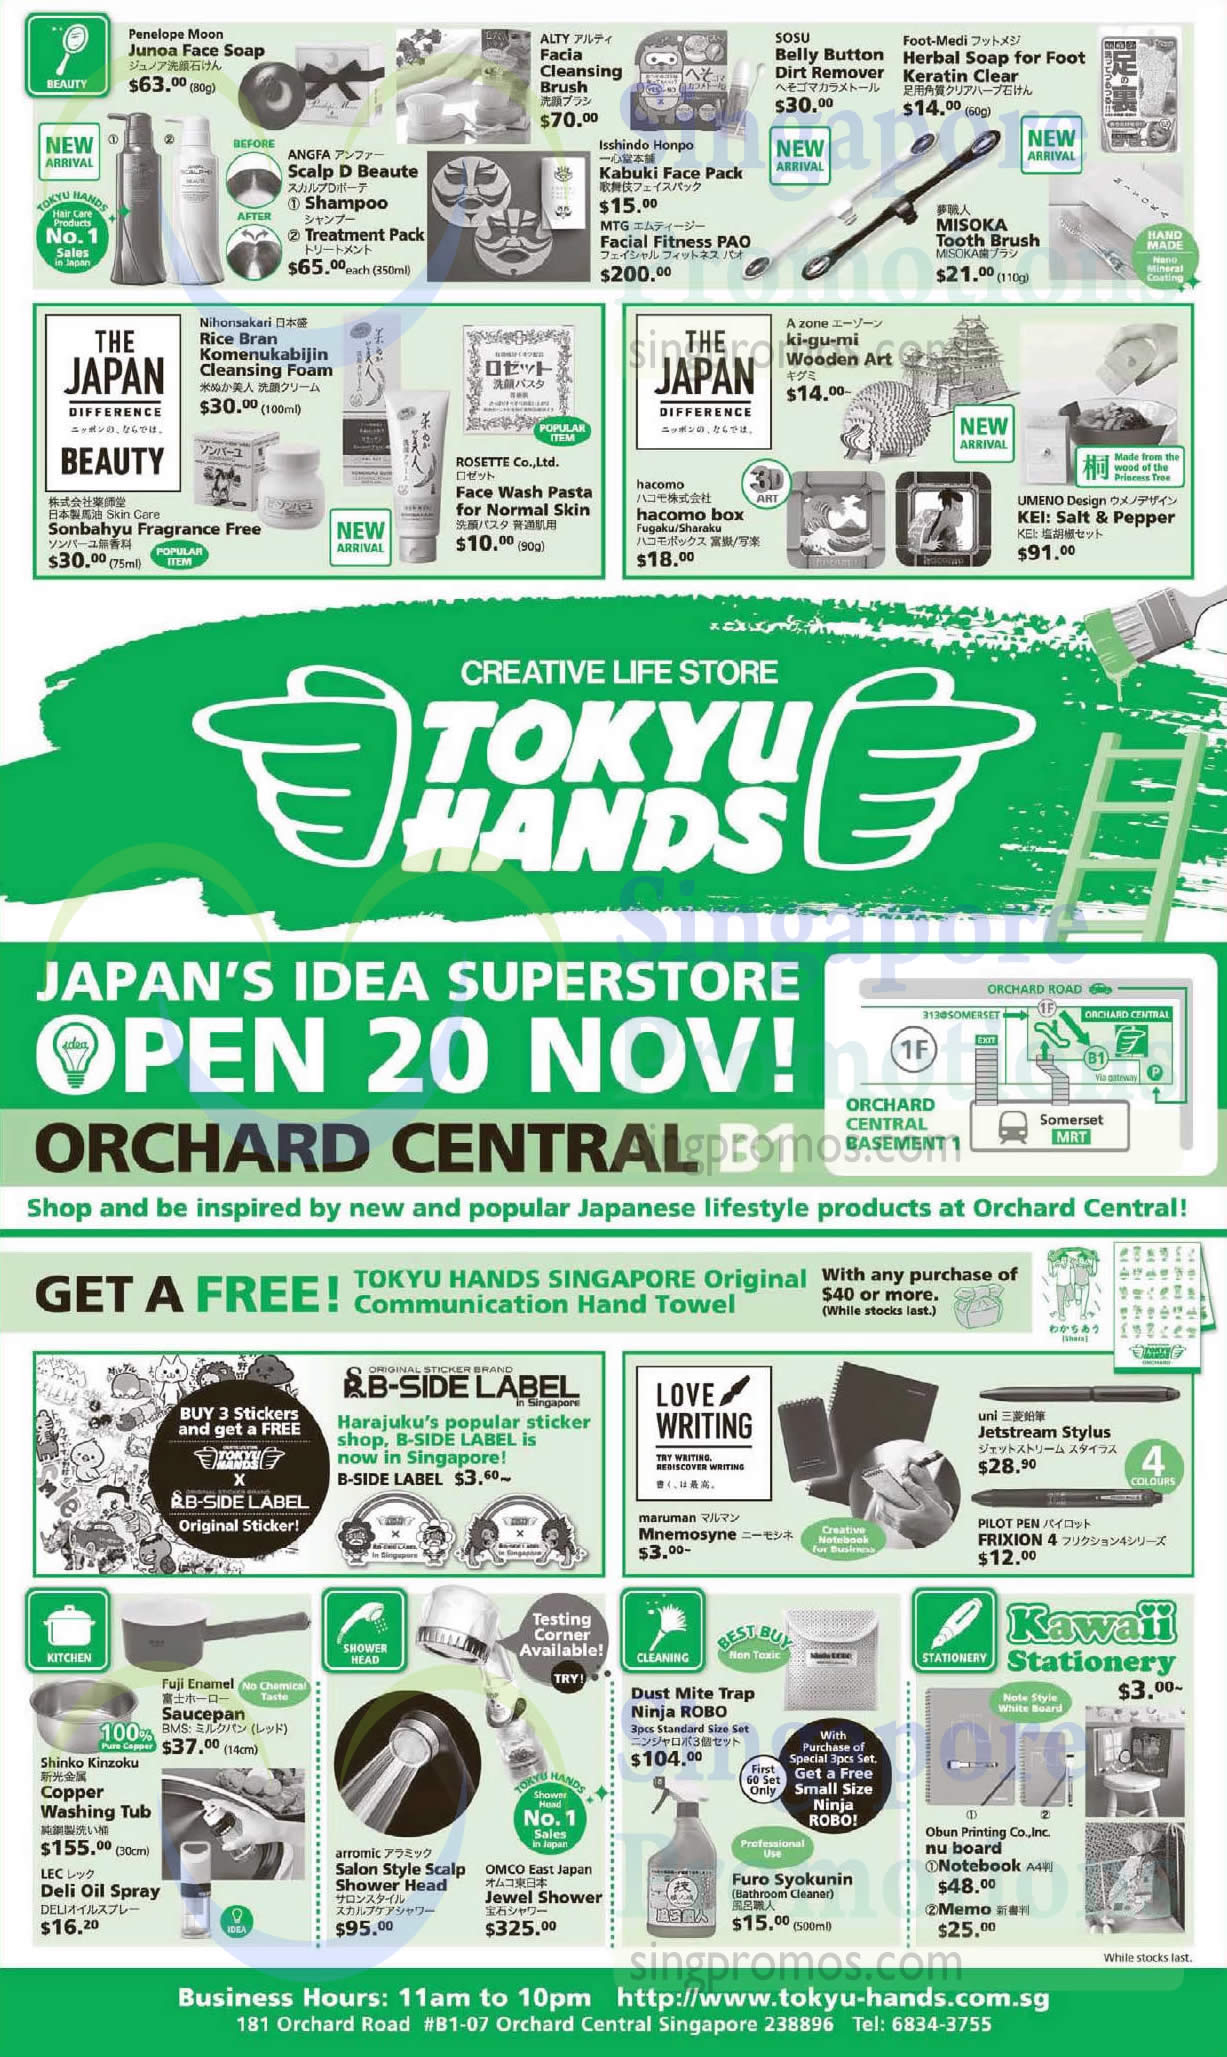 Tokyu Hands Opening @ Orchard Central From 20 Nov 2014